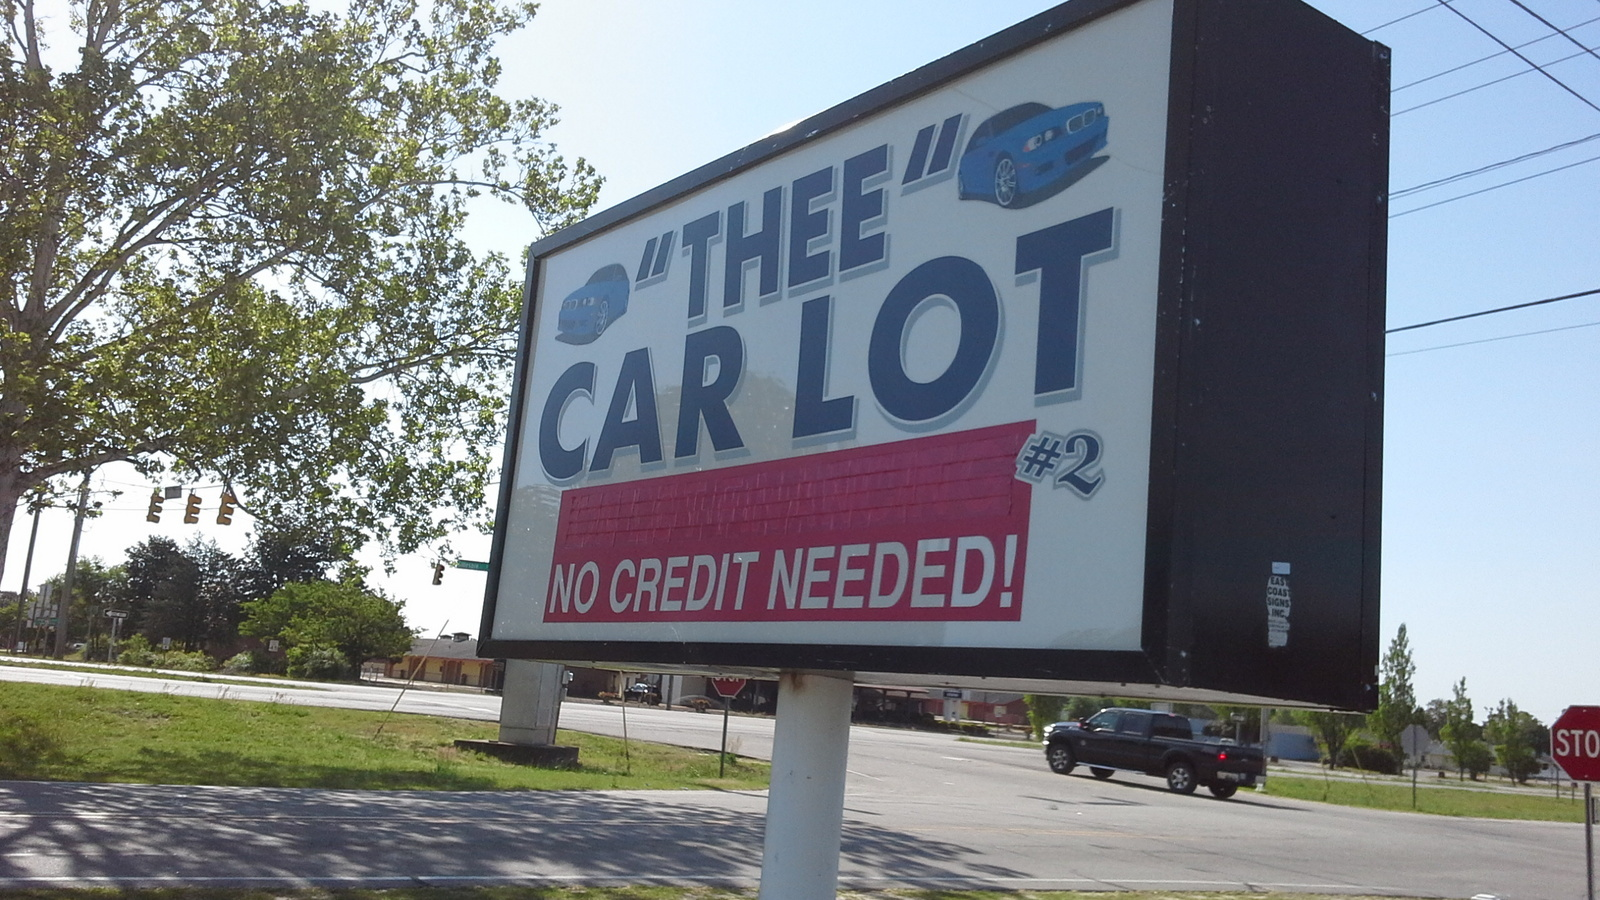 Thee Car Lot - Fayetteville, NC: Read Consumer reviews ...